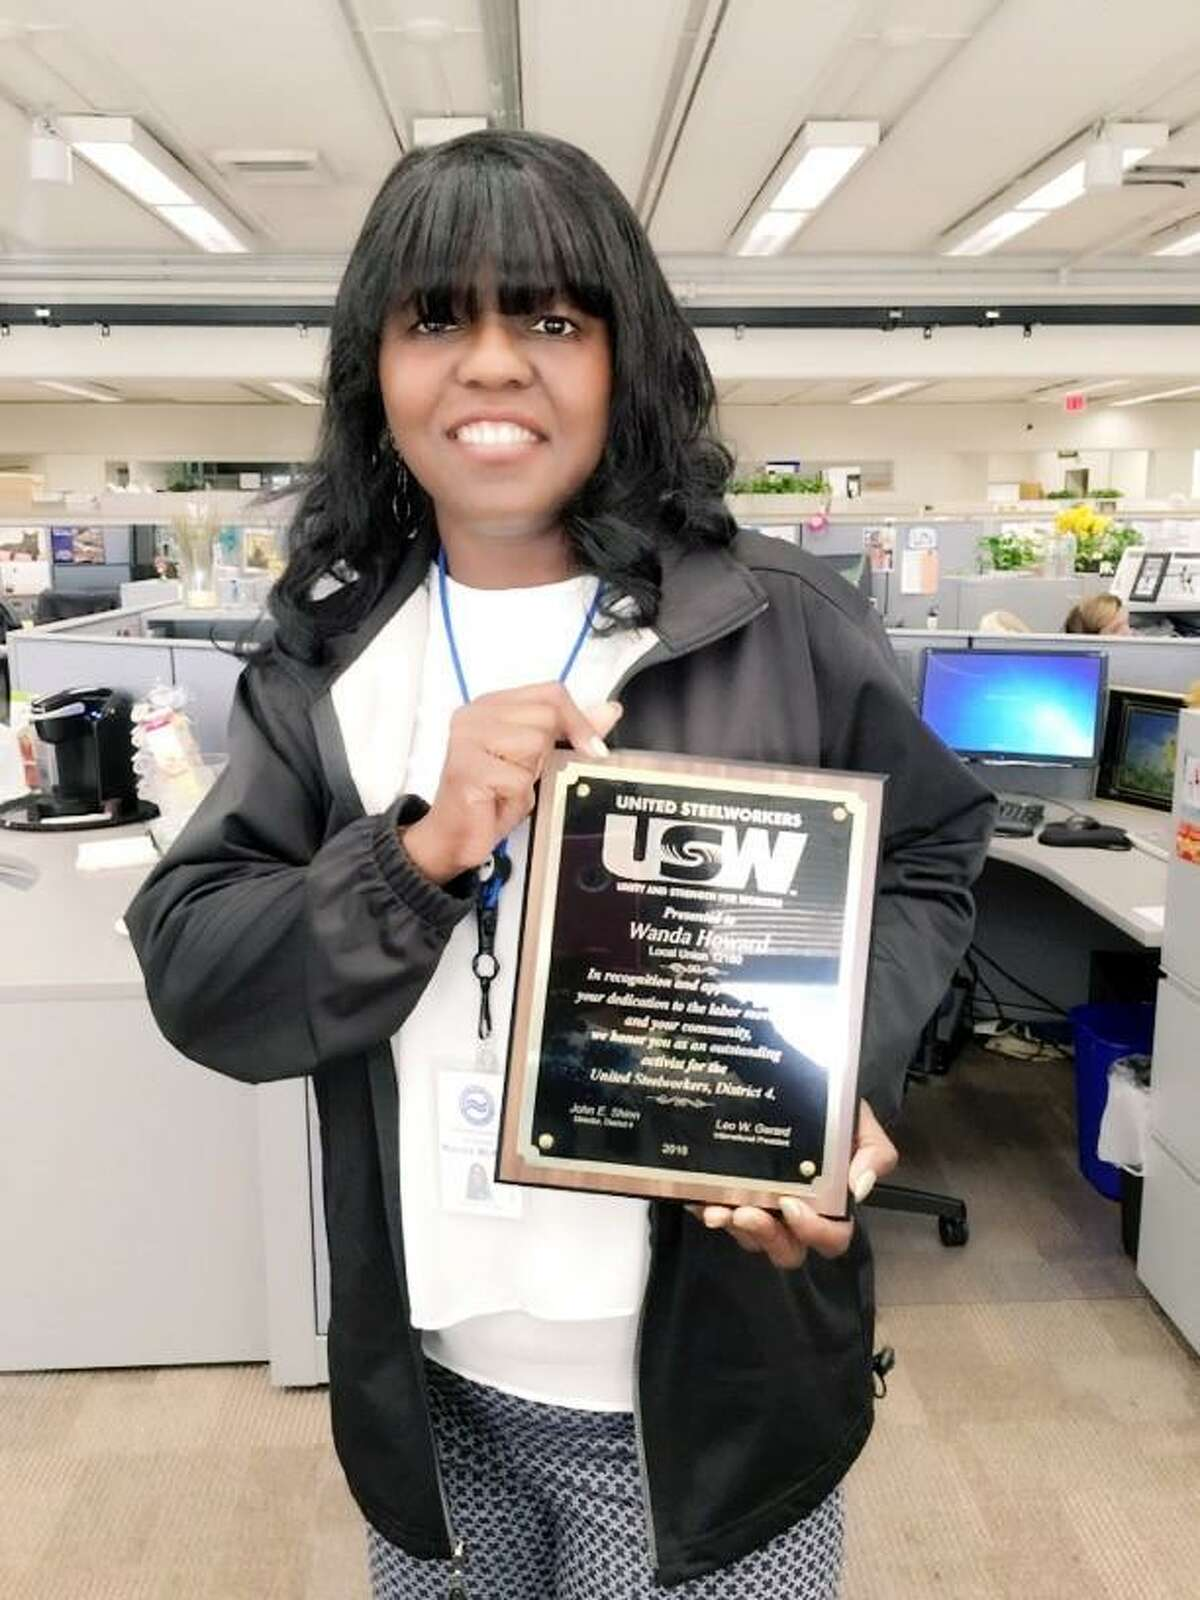 Wanda Howard, president of United Steelworkers Local 12160, is a senior customer service representative at the South Central Regional Water Authority in New Haven, where 126 employees have been working under an expired contract for a year.